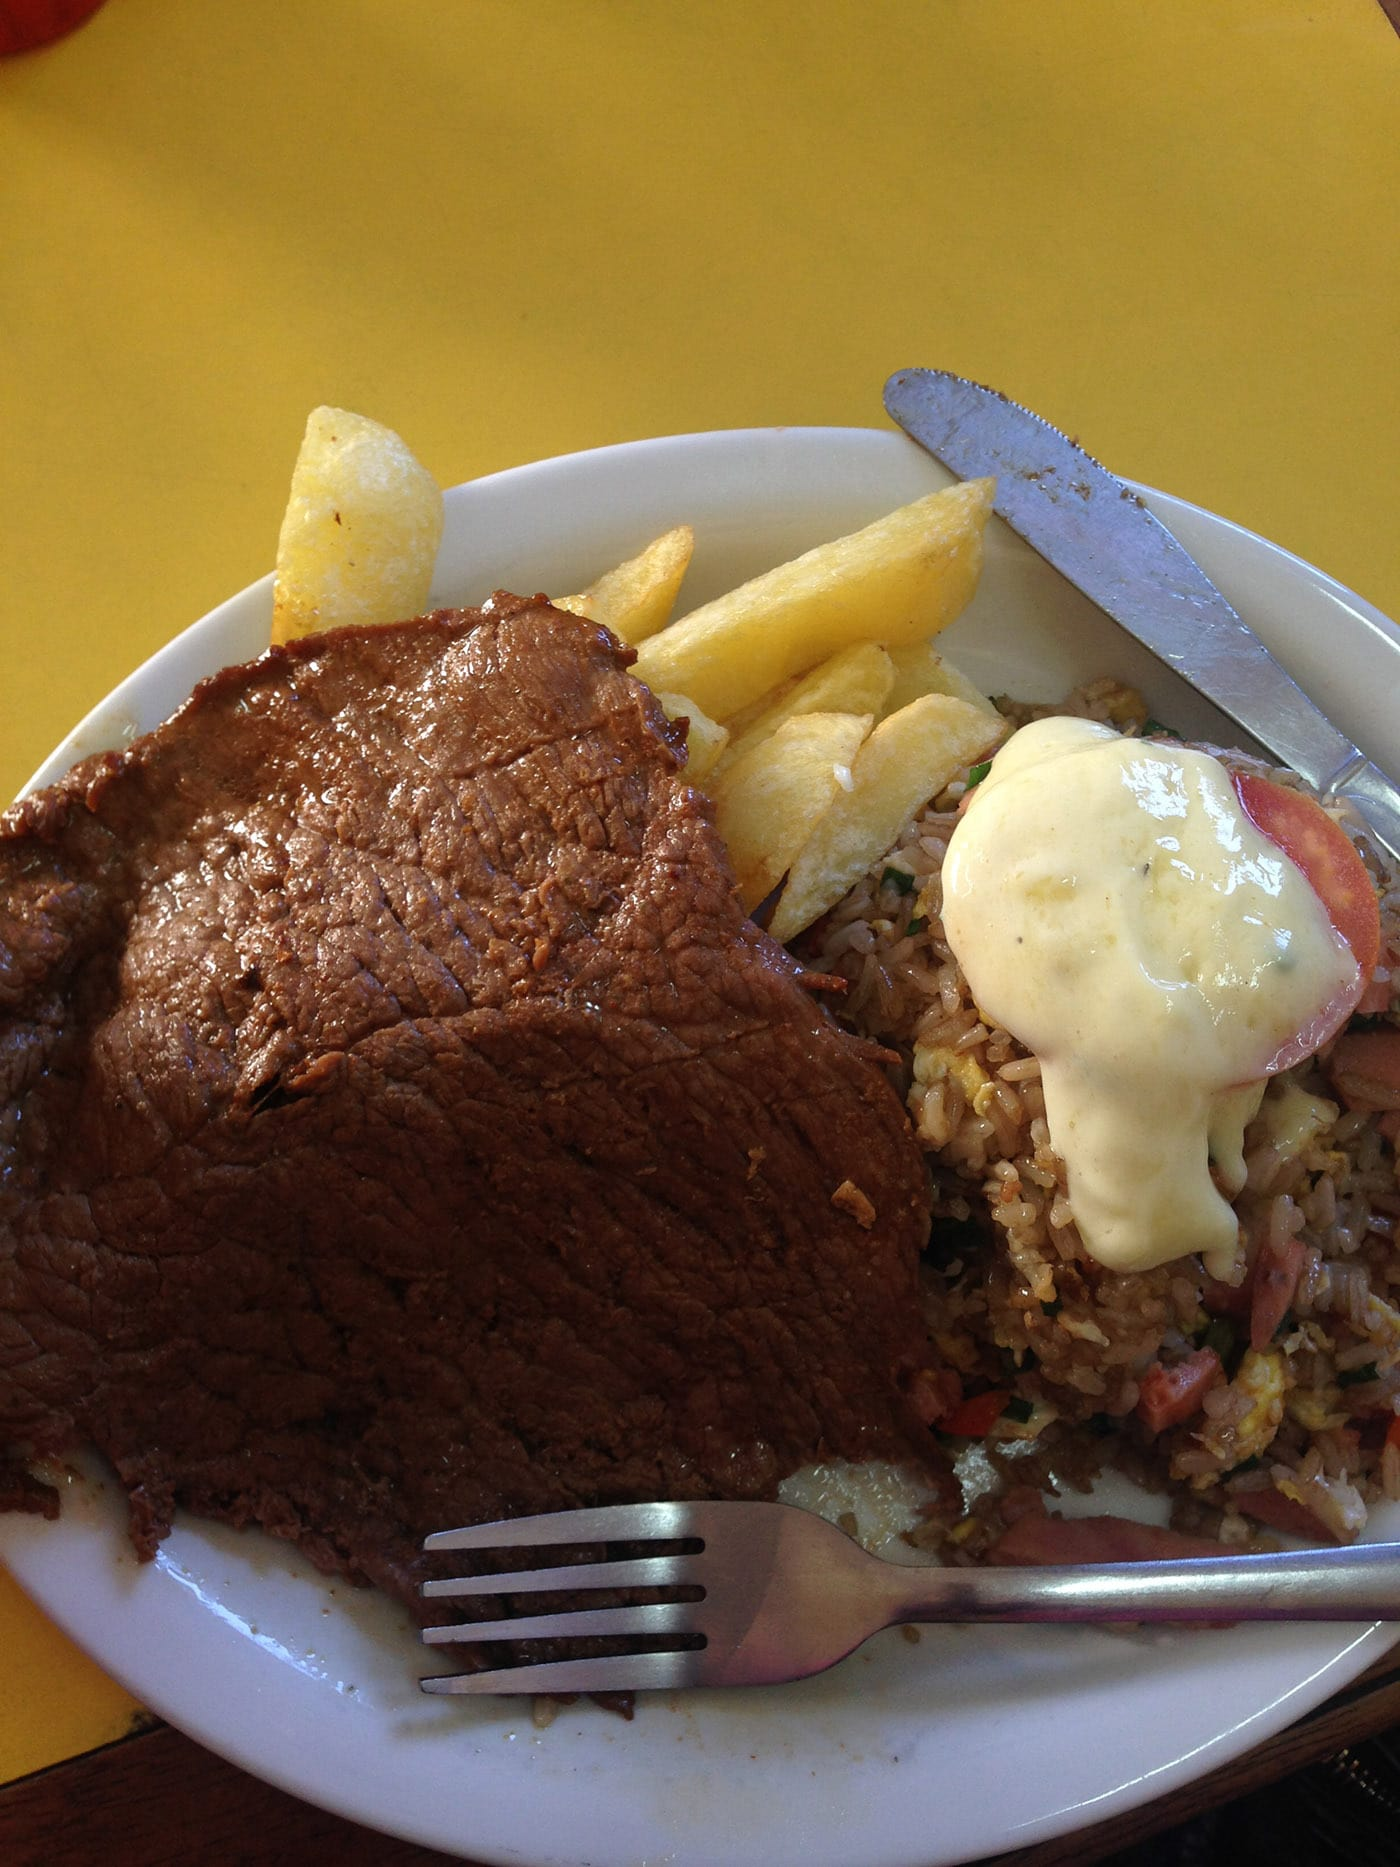 Beef with fried rice and fries in Cusco, Peru